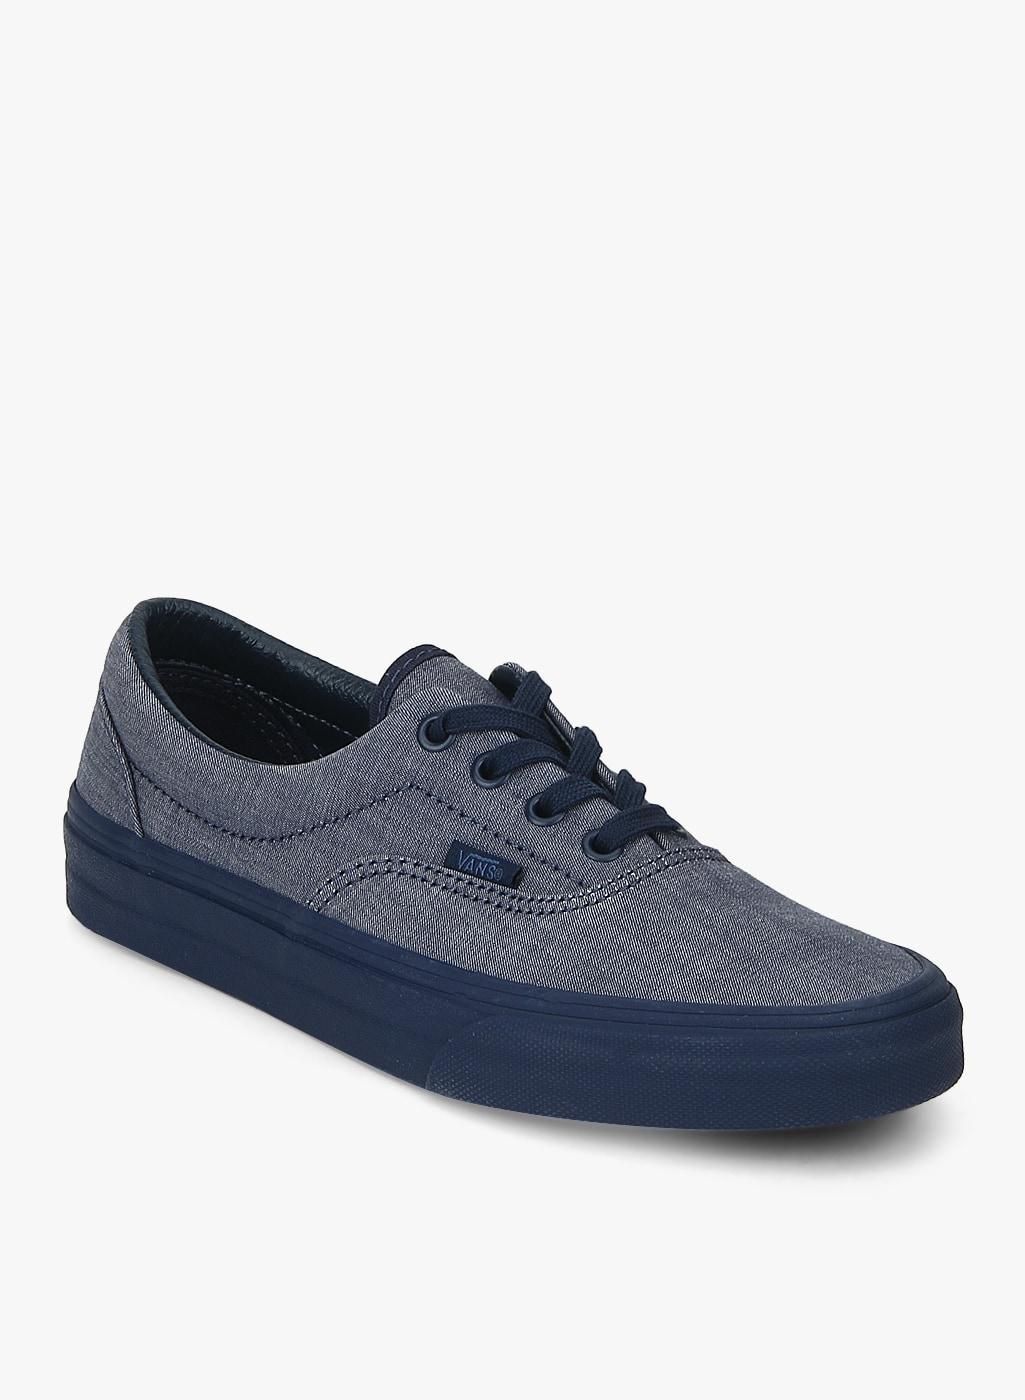 27e9fc94f29 Vans Era Navy Blue Sneakers for Men online in India at Best price on ...